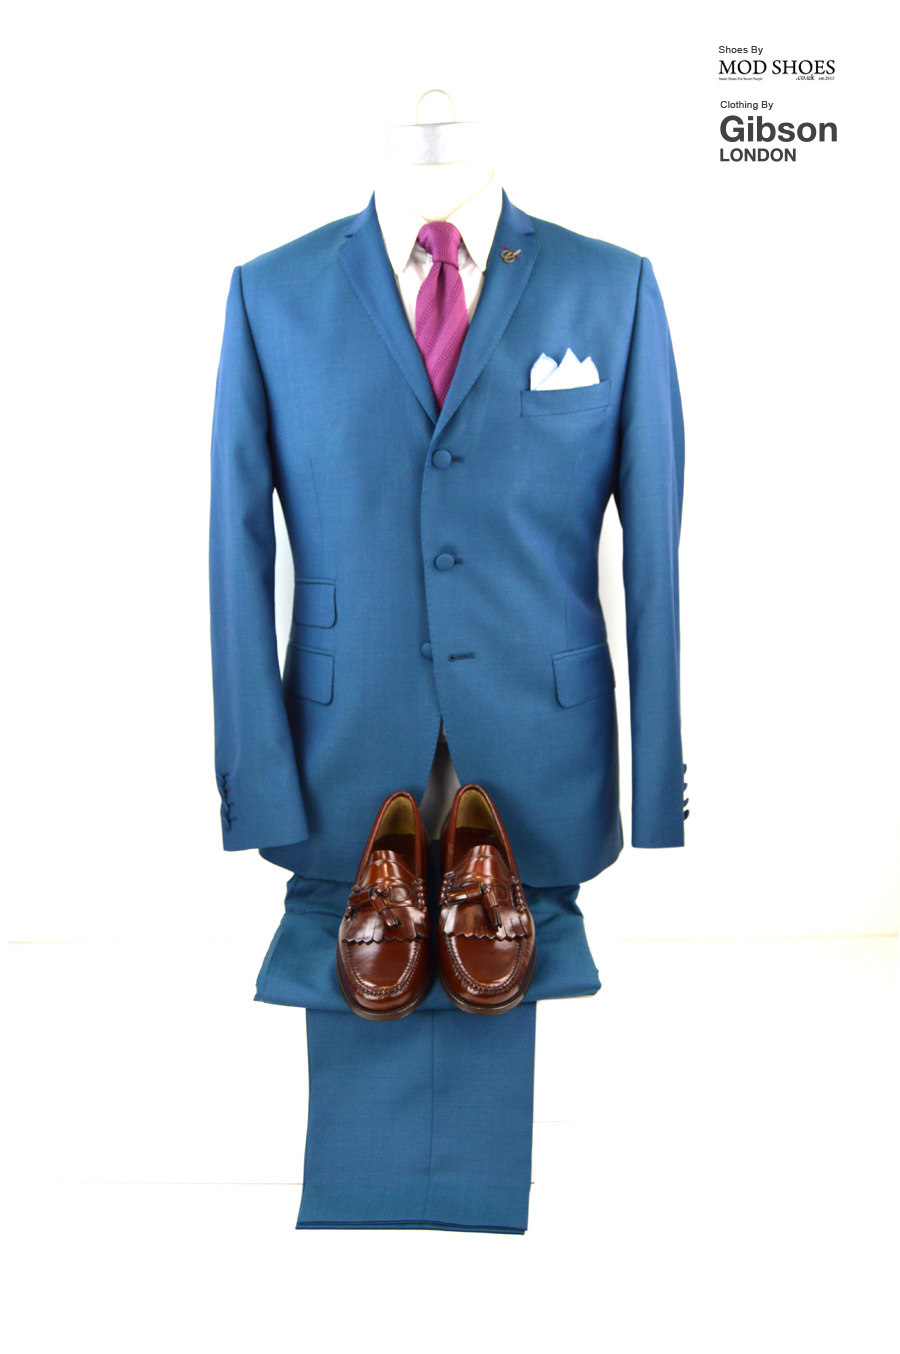 modshoes-with-gibson-clothing-mod-suit